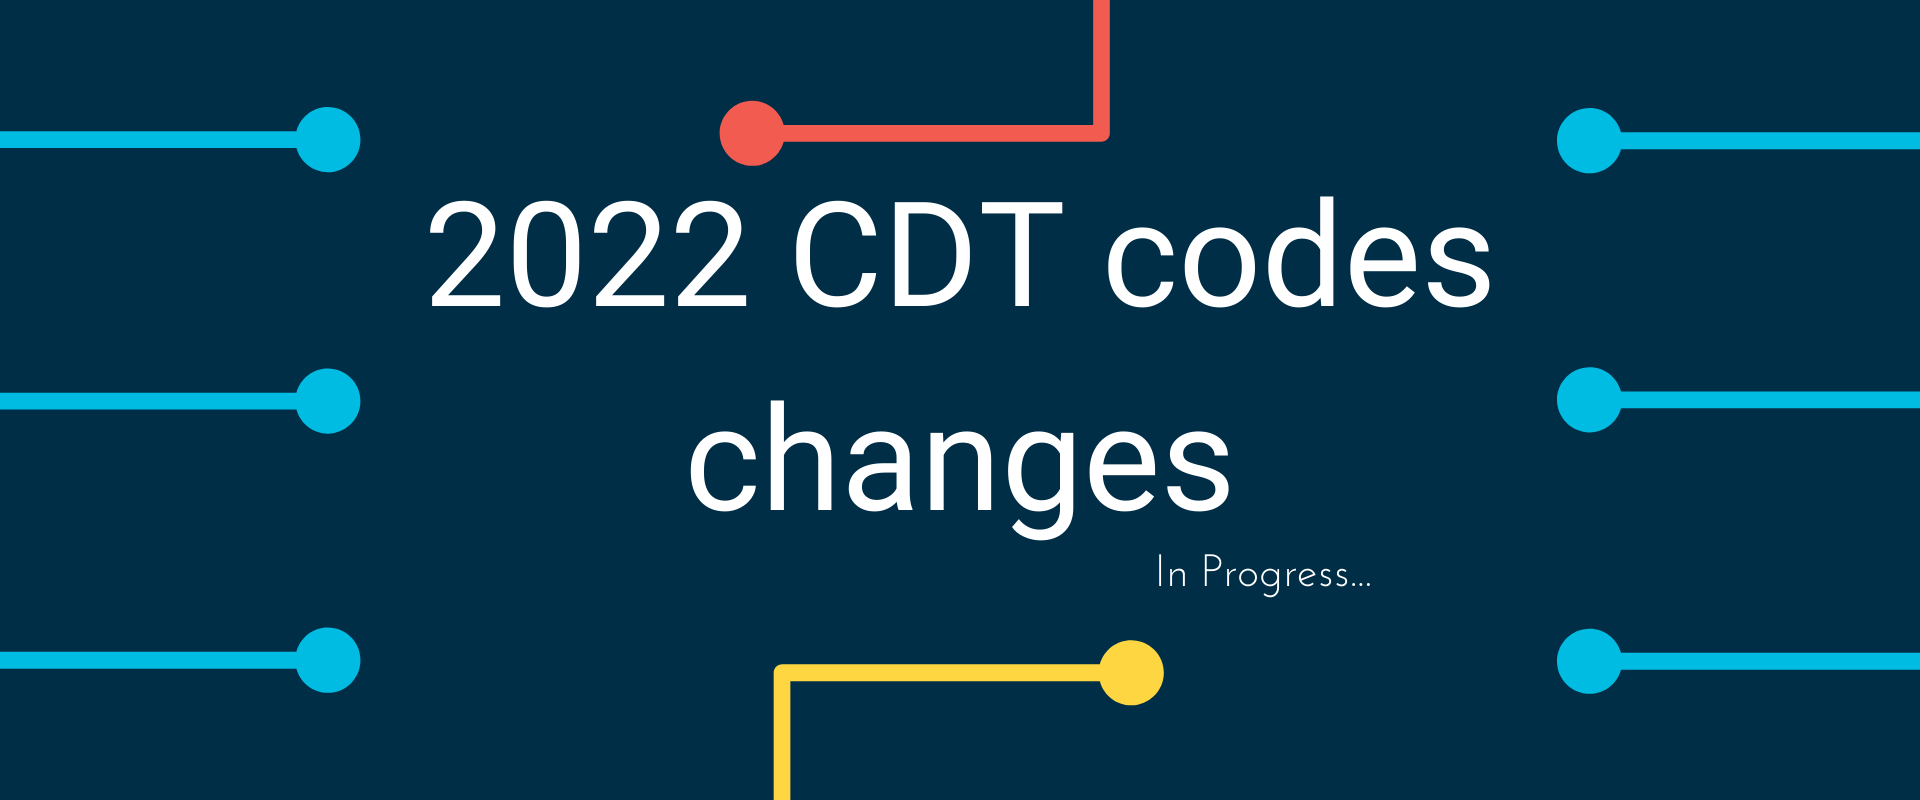 2022 CDT codes changes